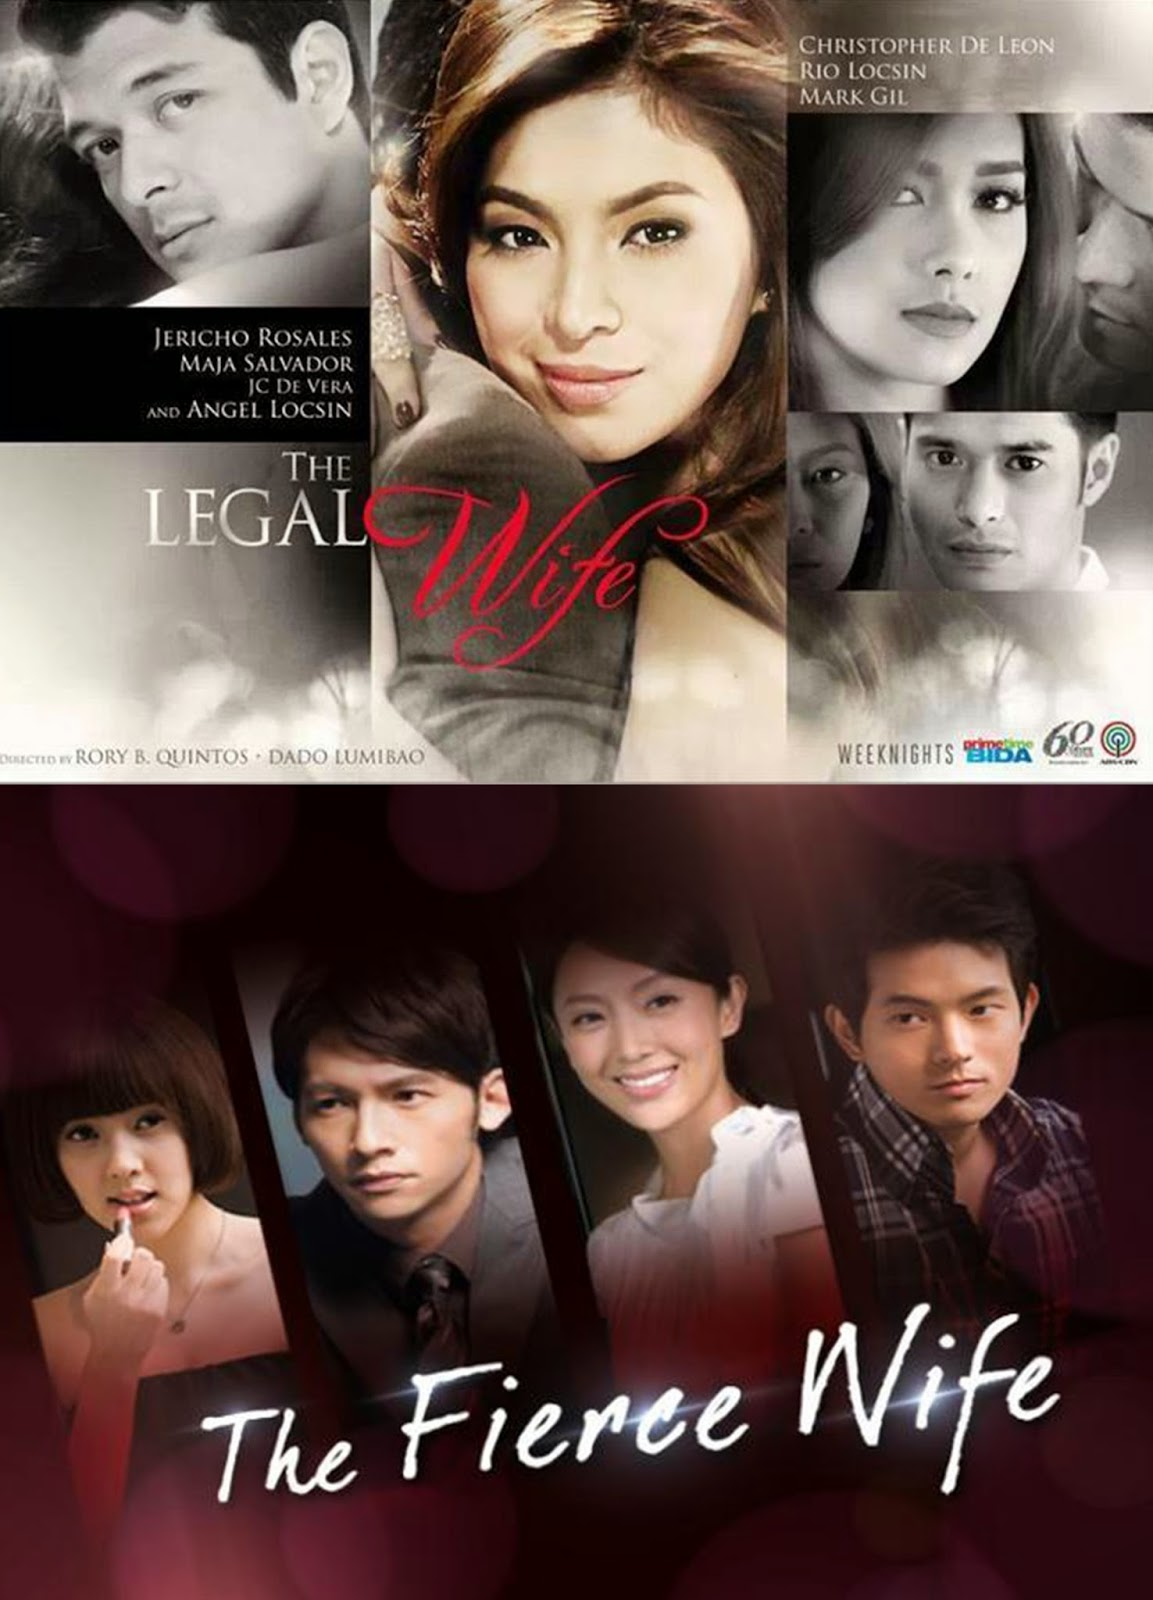 +Legal+Wife+Angel+Locsin+Maja+Salvador+JC+De+Vera+Jericho+Rosales.jpg